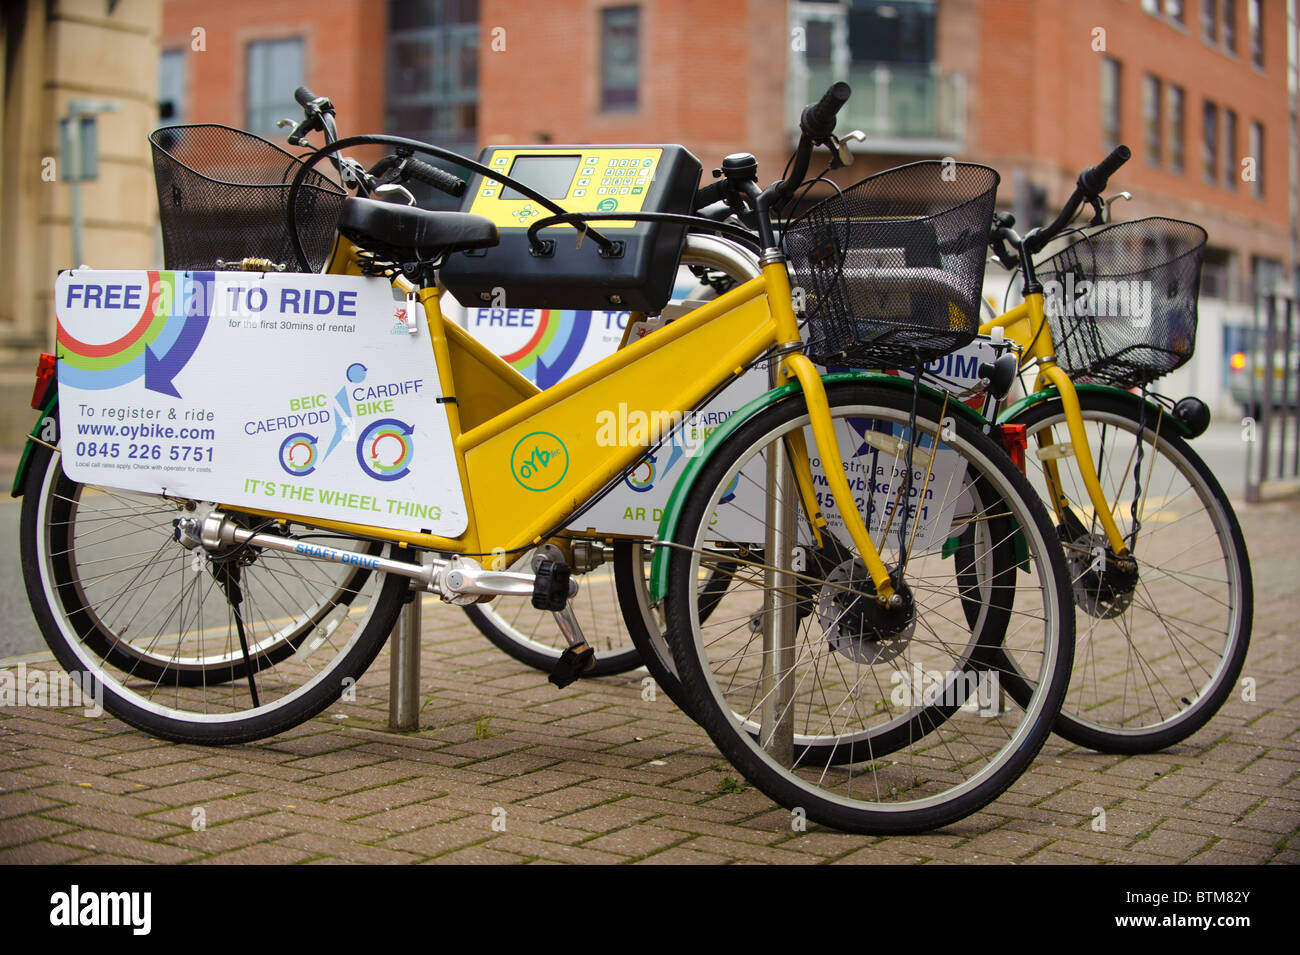 On Your Bike cycle hire scheme, Cardiff Wales UK - Stock Image